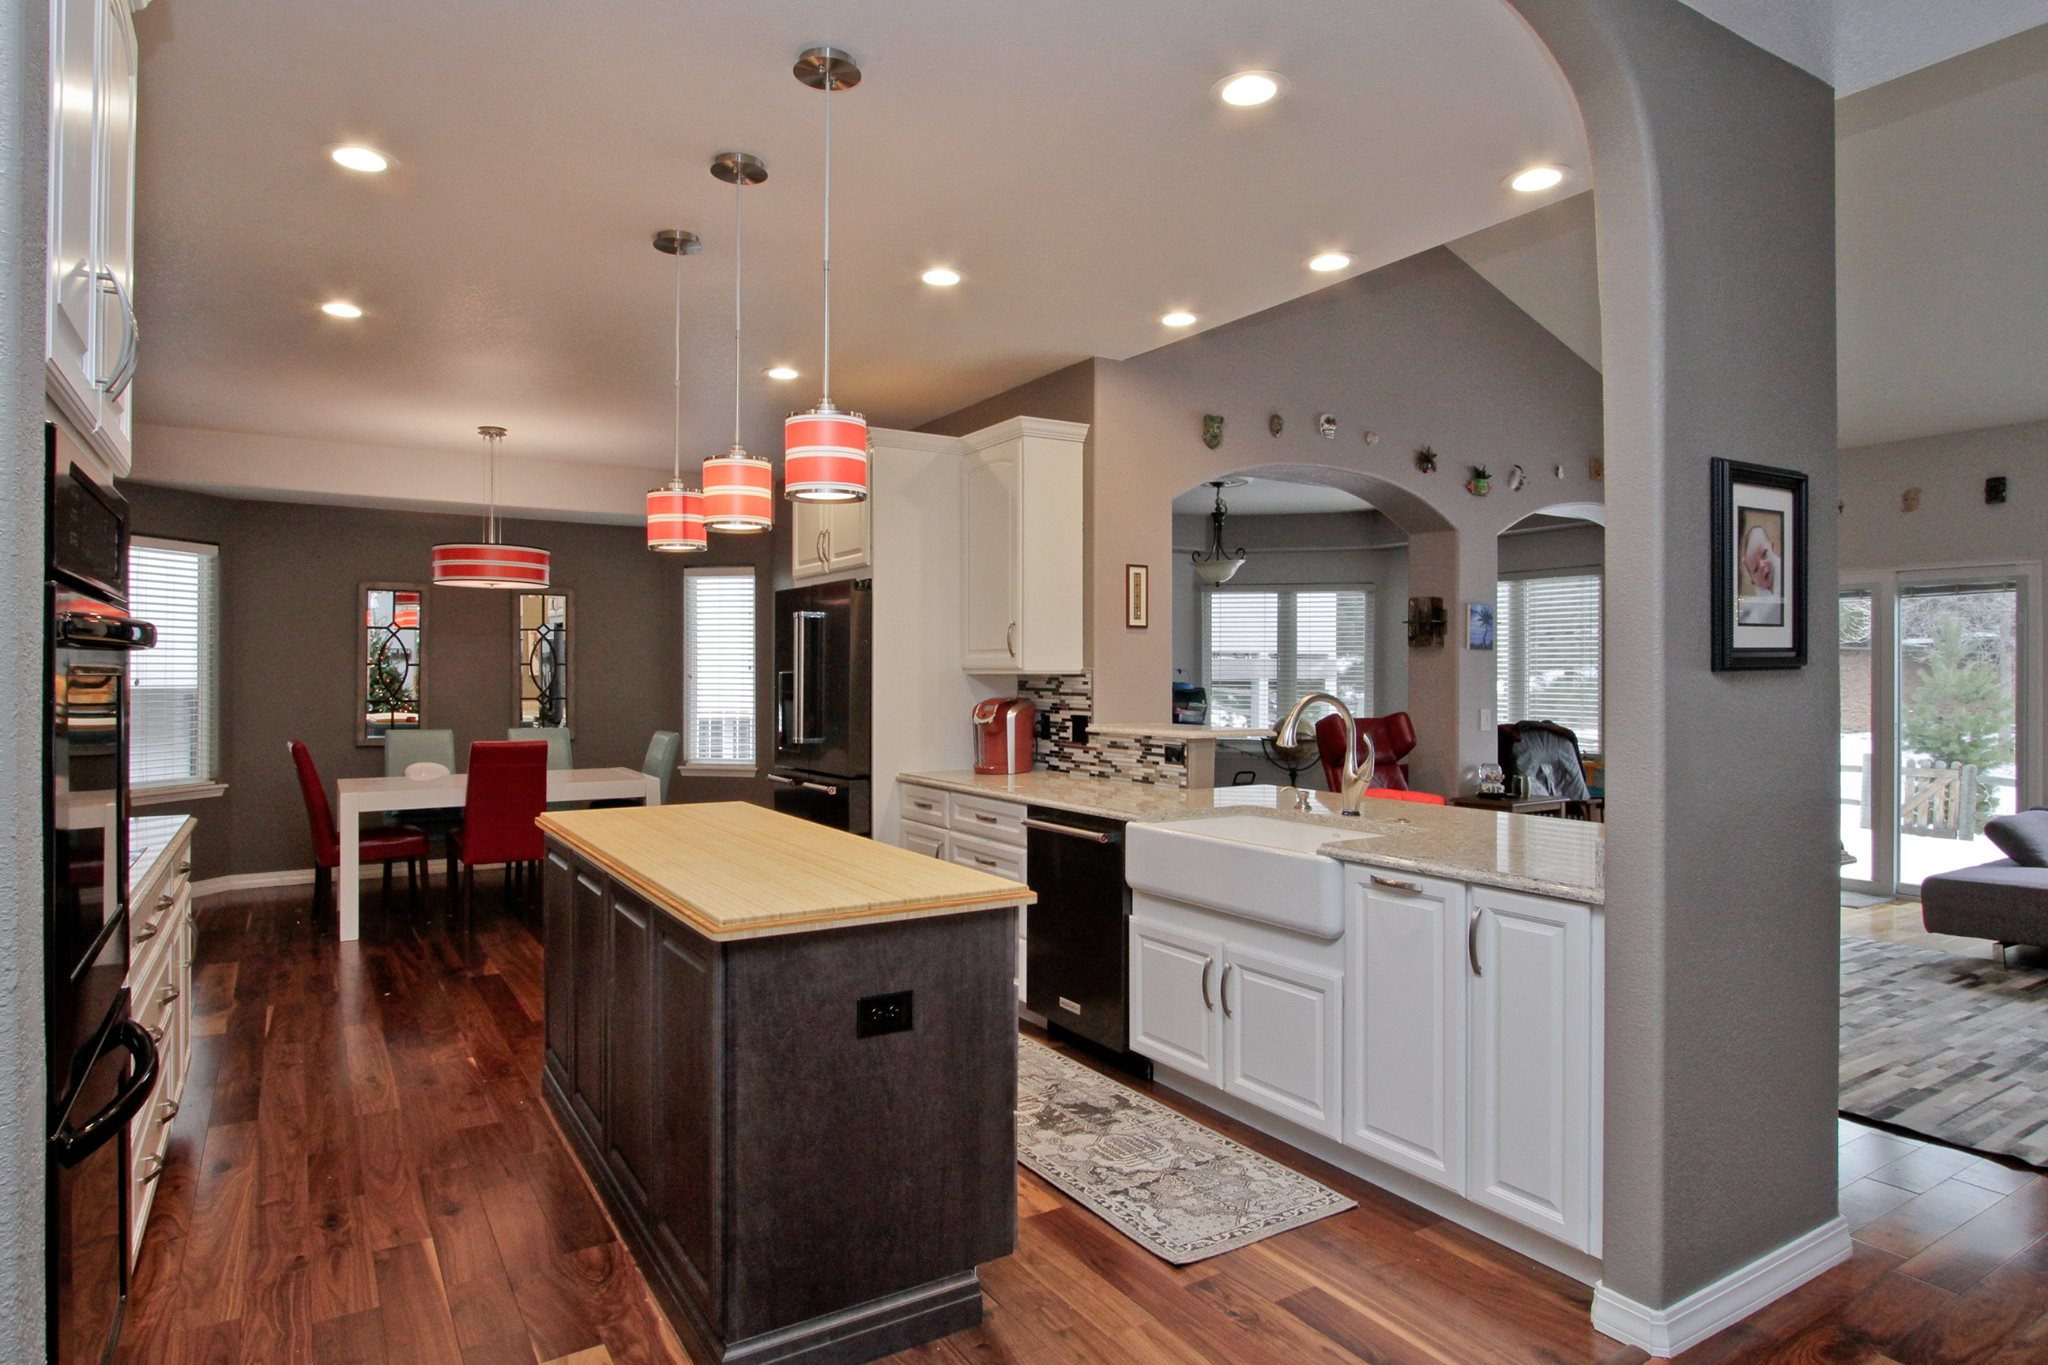 Kitchen, Bathroom, & Home Remodeling, Wheat Ridge, CO